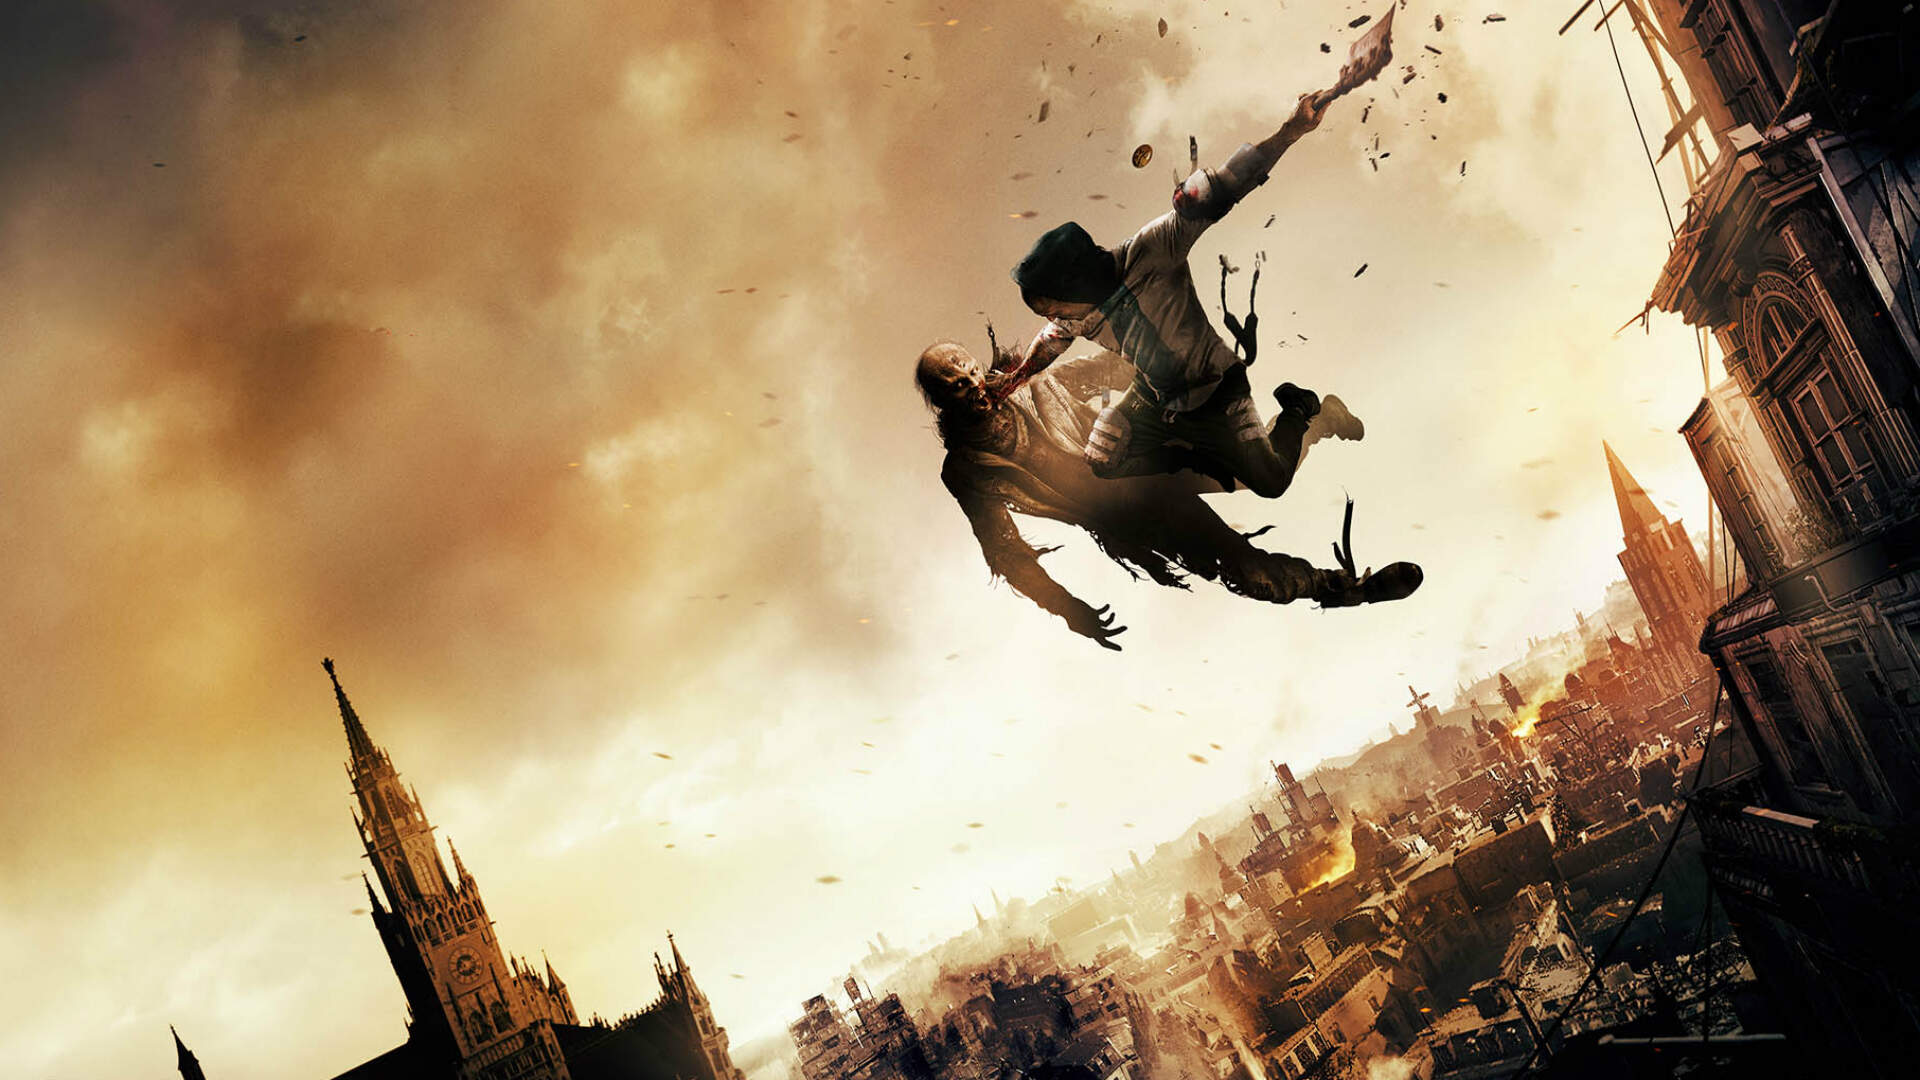 Dying Light 2 Release Date: Zombies, Setting, Player Choices - Everything We Know